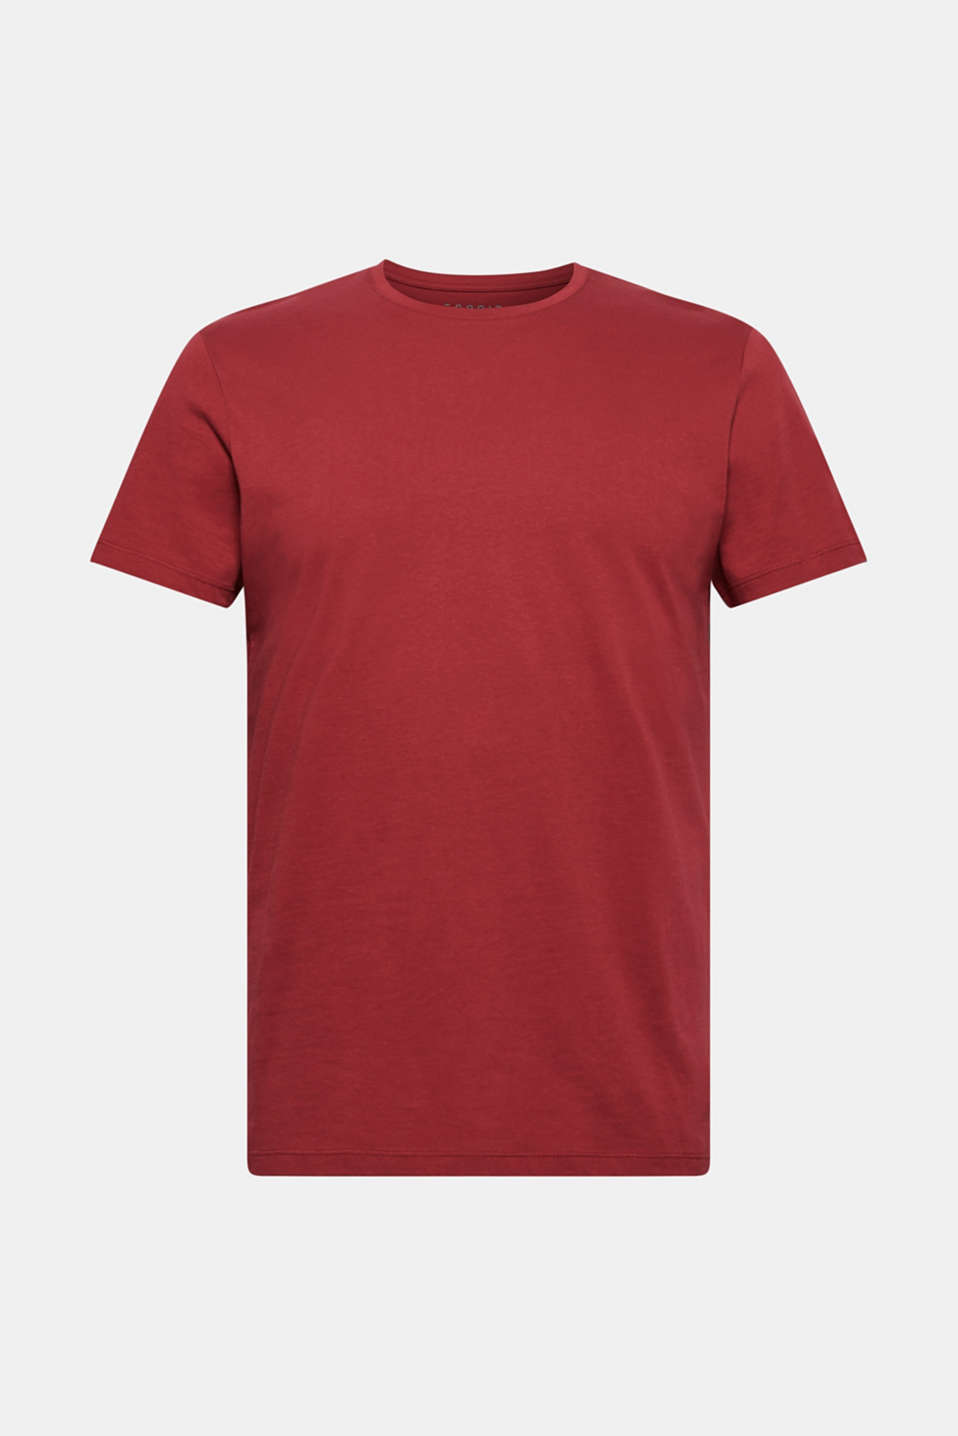 Jersey T-shirt in 100% cotton, BORDEAUX RED 2, detail image number 5